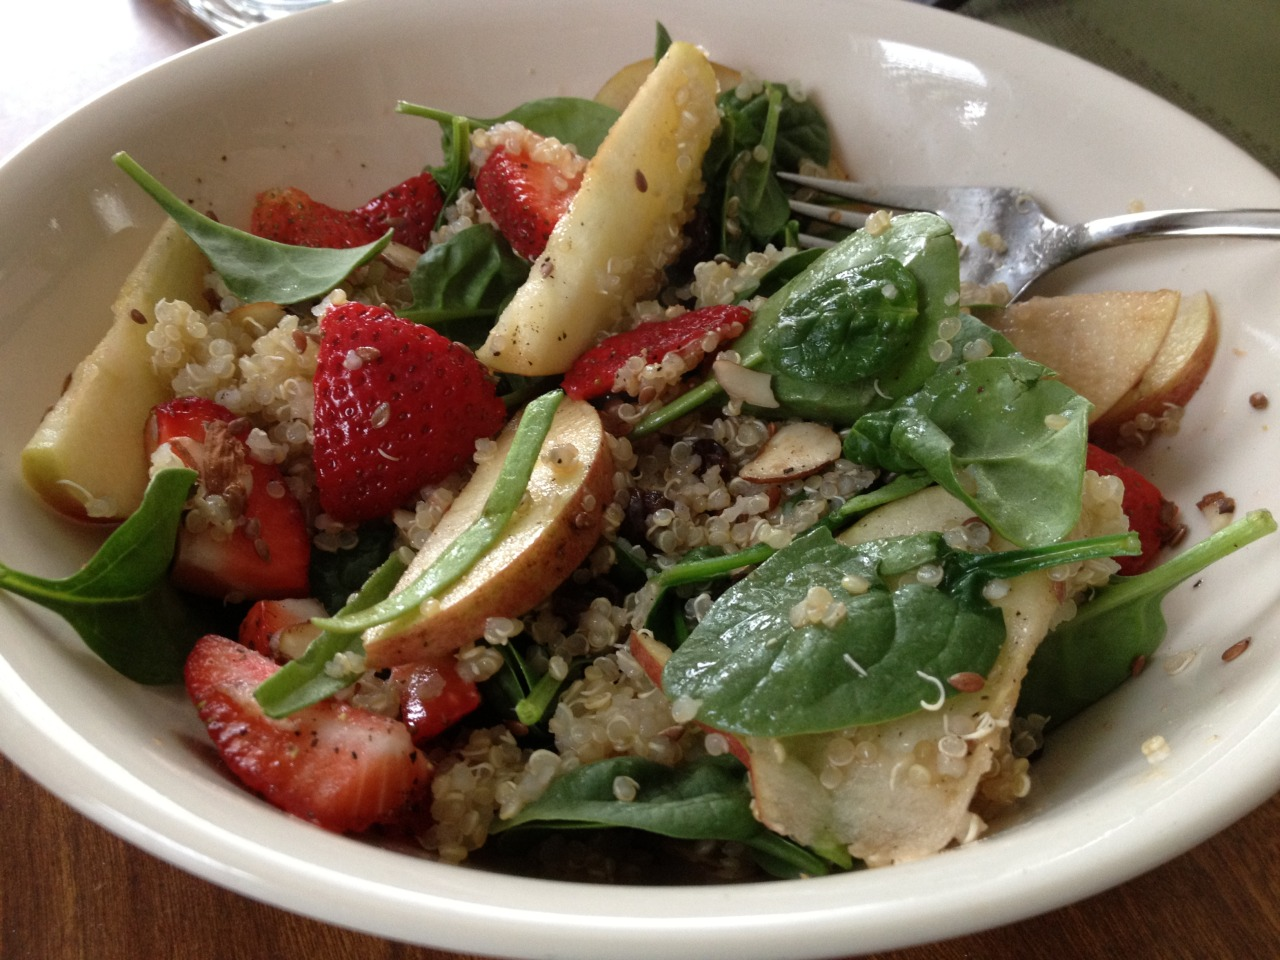 Quinoa salad with fruit